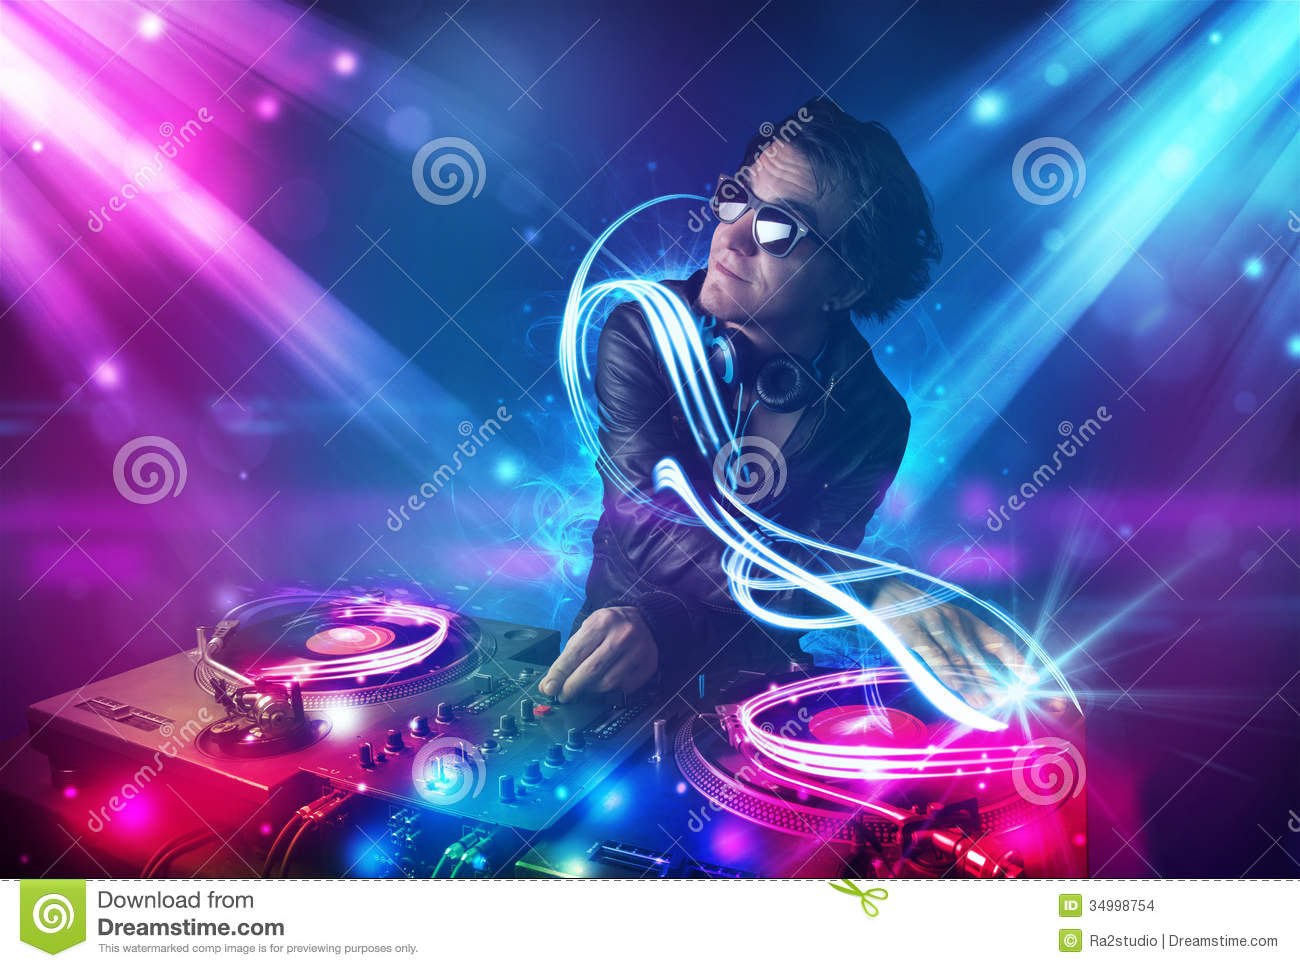 energetic dj mixing music with powerful light effects stock photo image 34998754. Black Bedroom Furniture Sets. Home Design Ideas